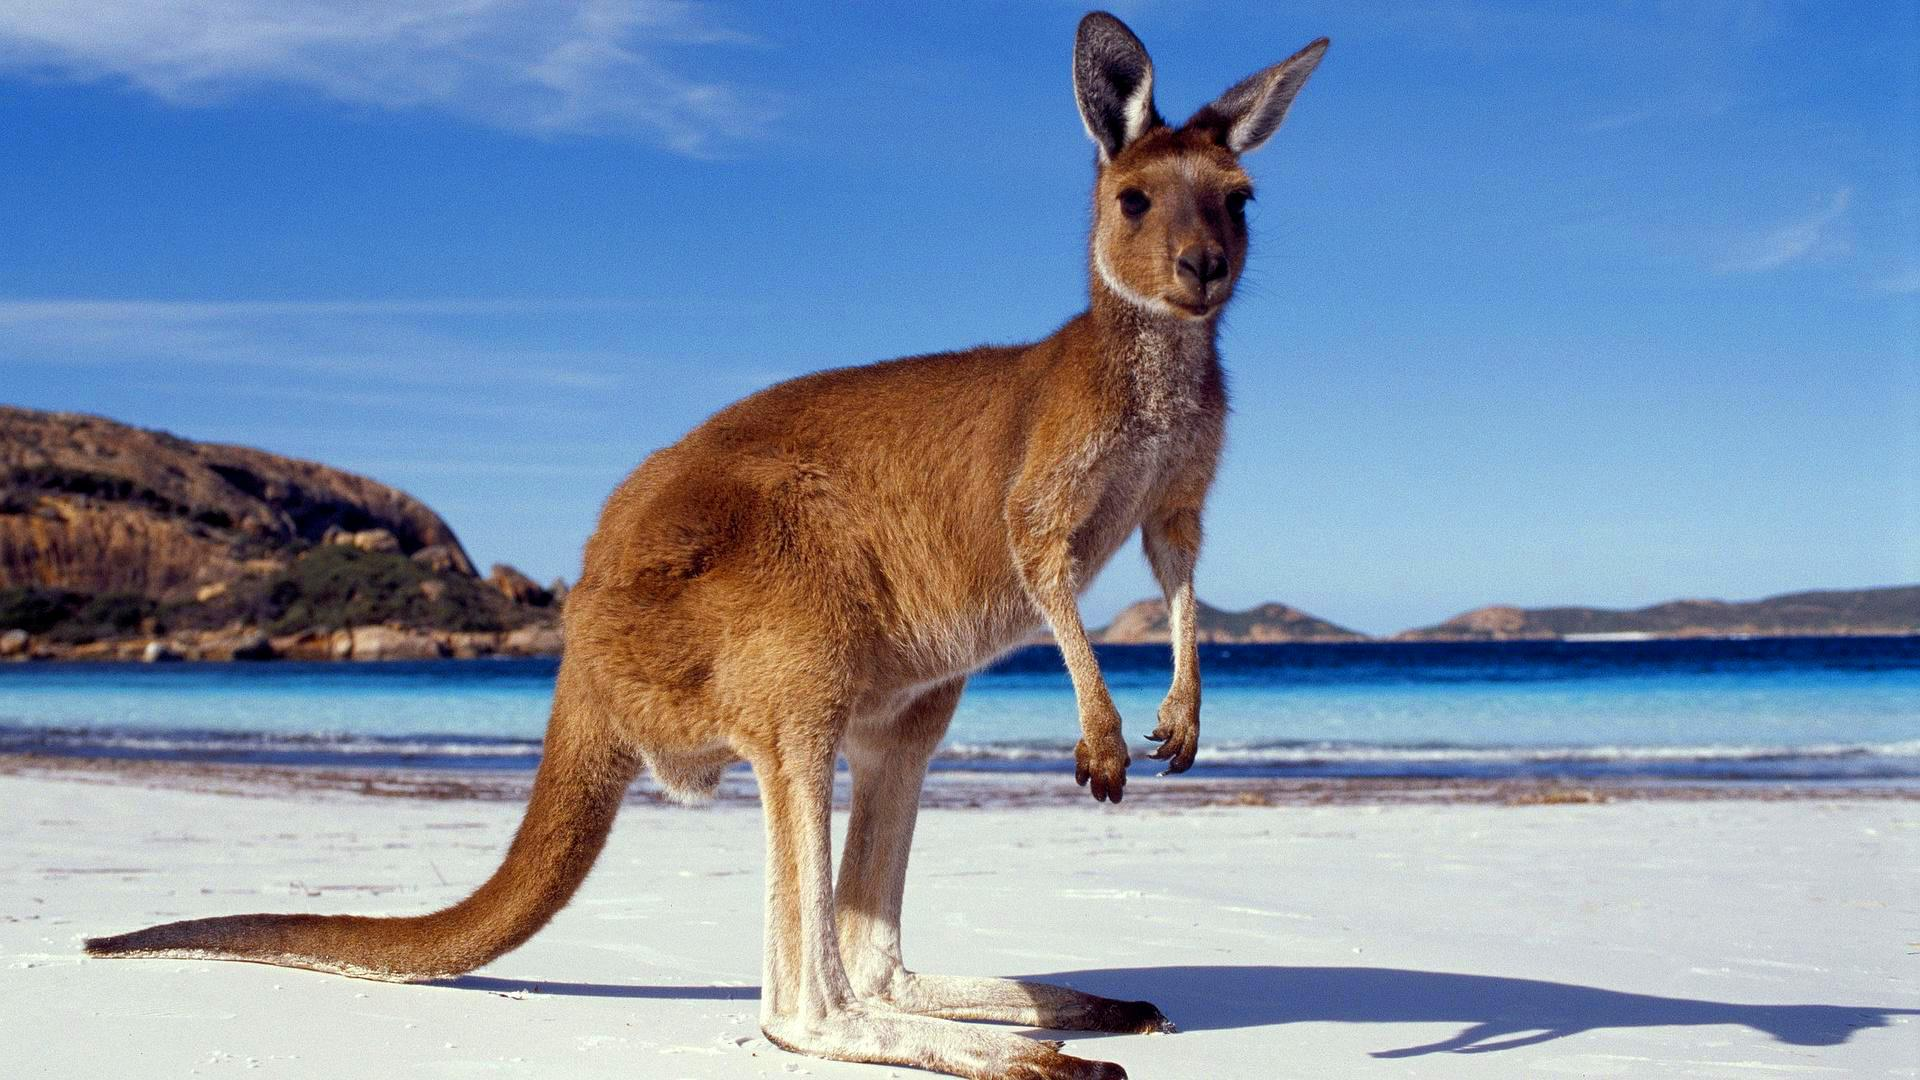 Kangaroo wallpapers high quality download free - Image kangourou ...